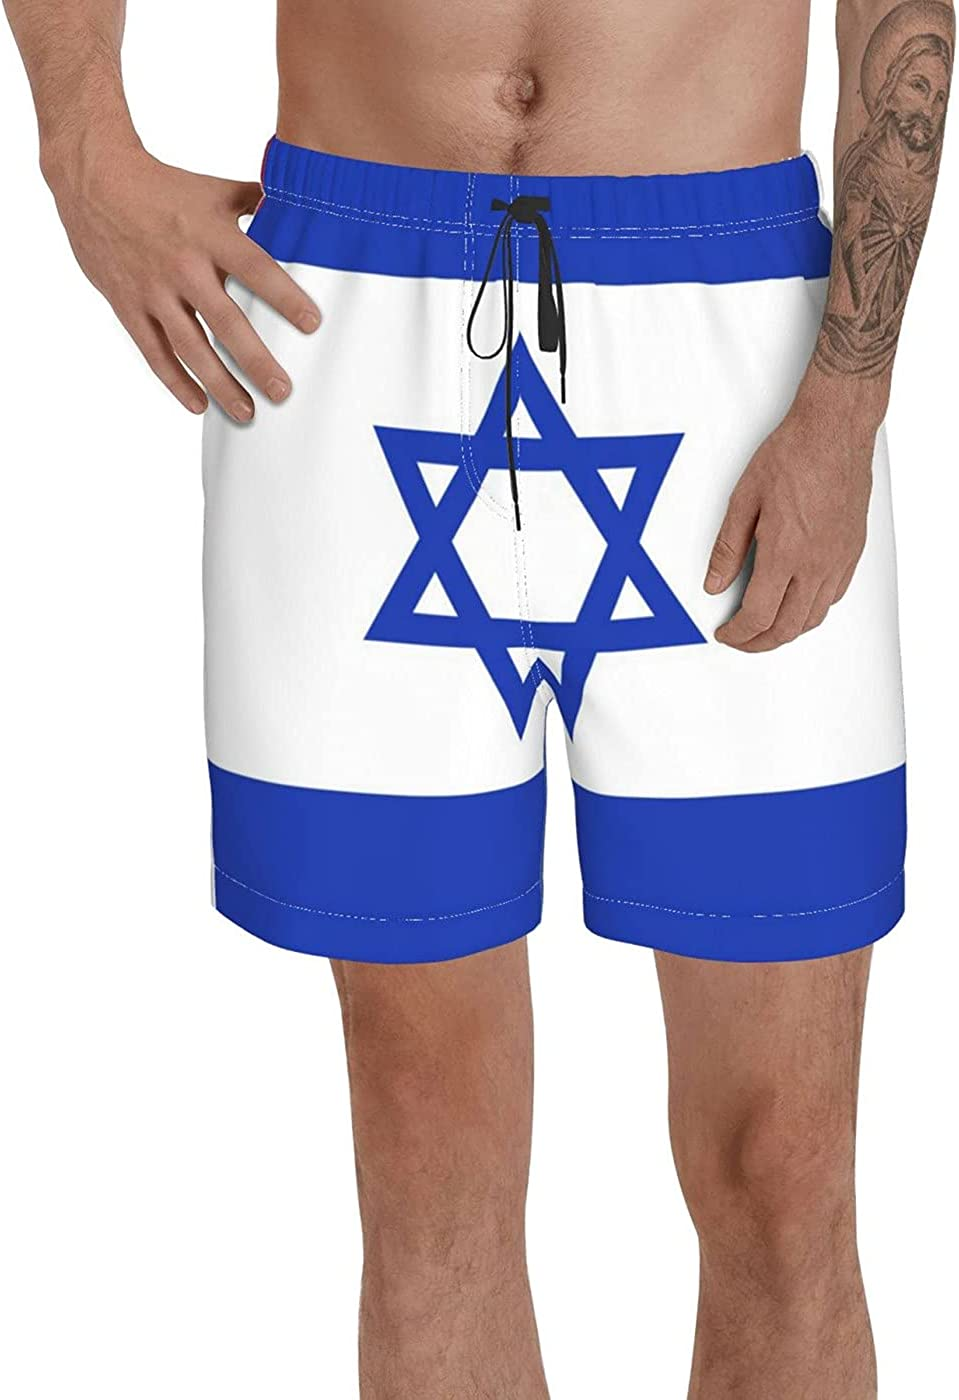 Count Israel Flag Men's 3D Printed Funny Summer Quick Dry Swim Short Board Shorts with